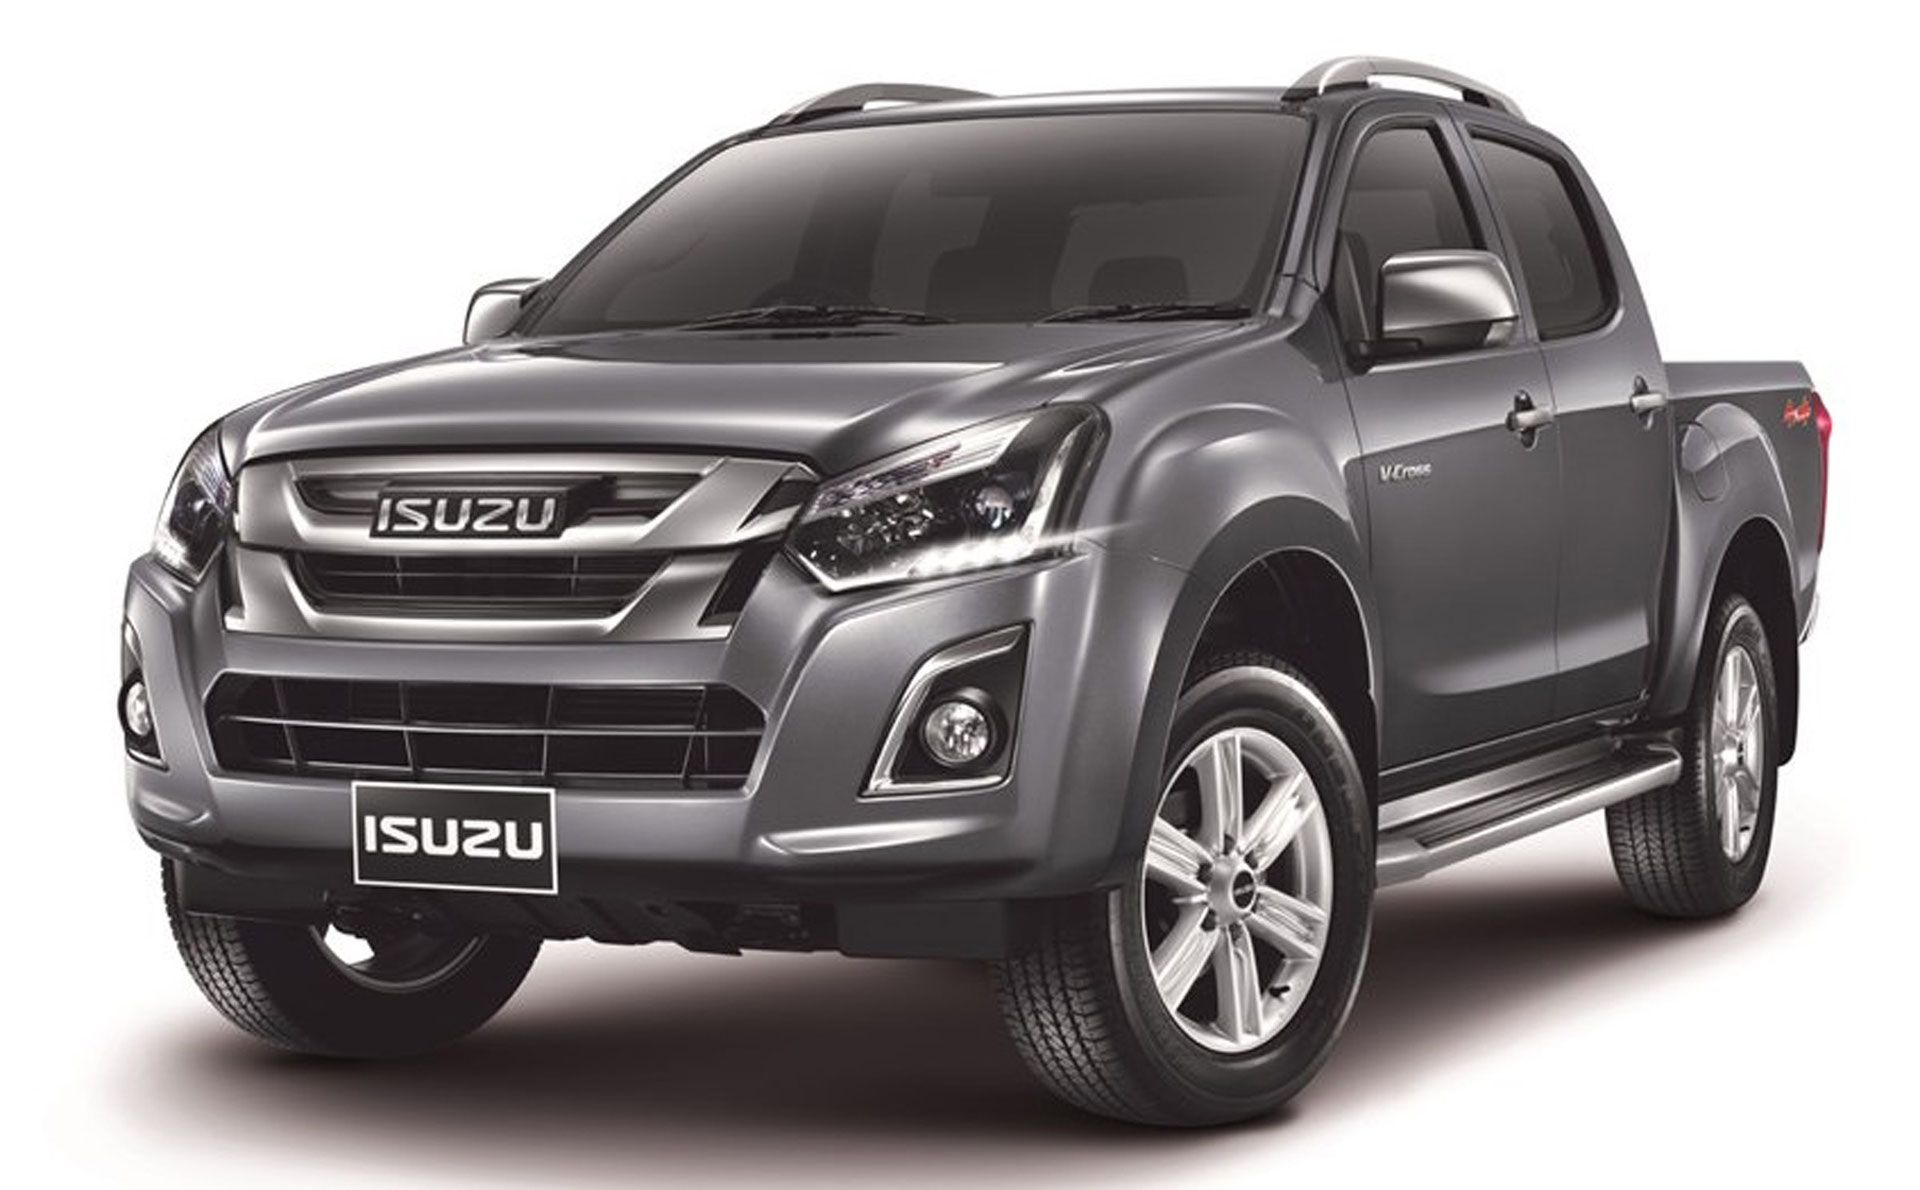 19 Isuzu PDF Manuals Download for Free! - Сar PDF Manual, Wiring Diagram,  Fault Codes